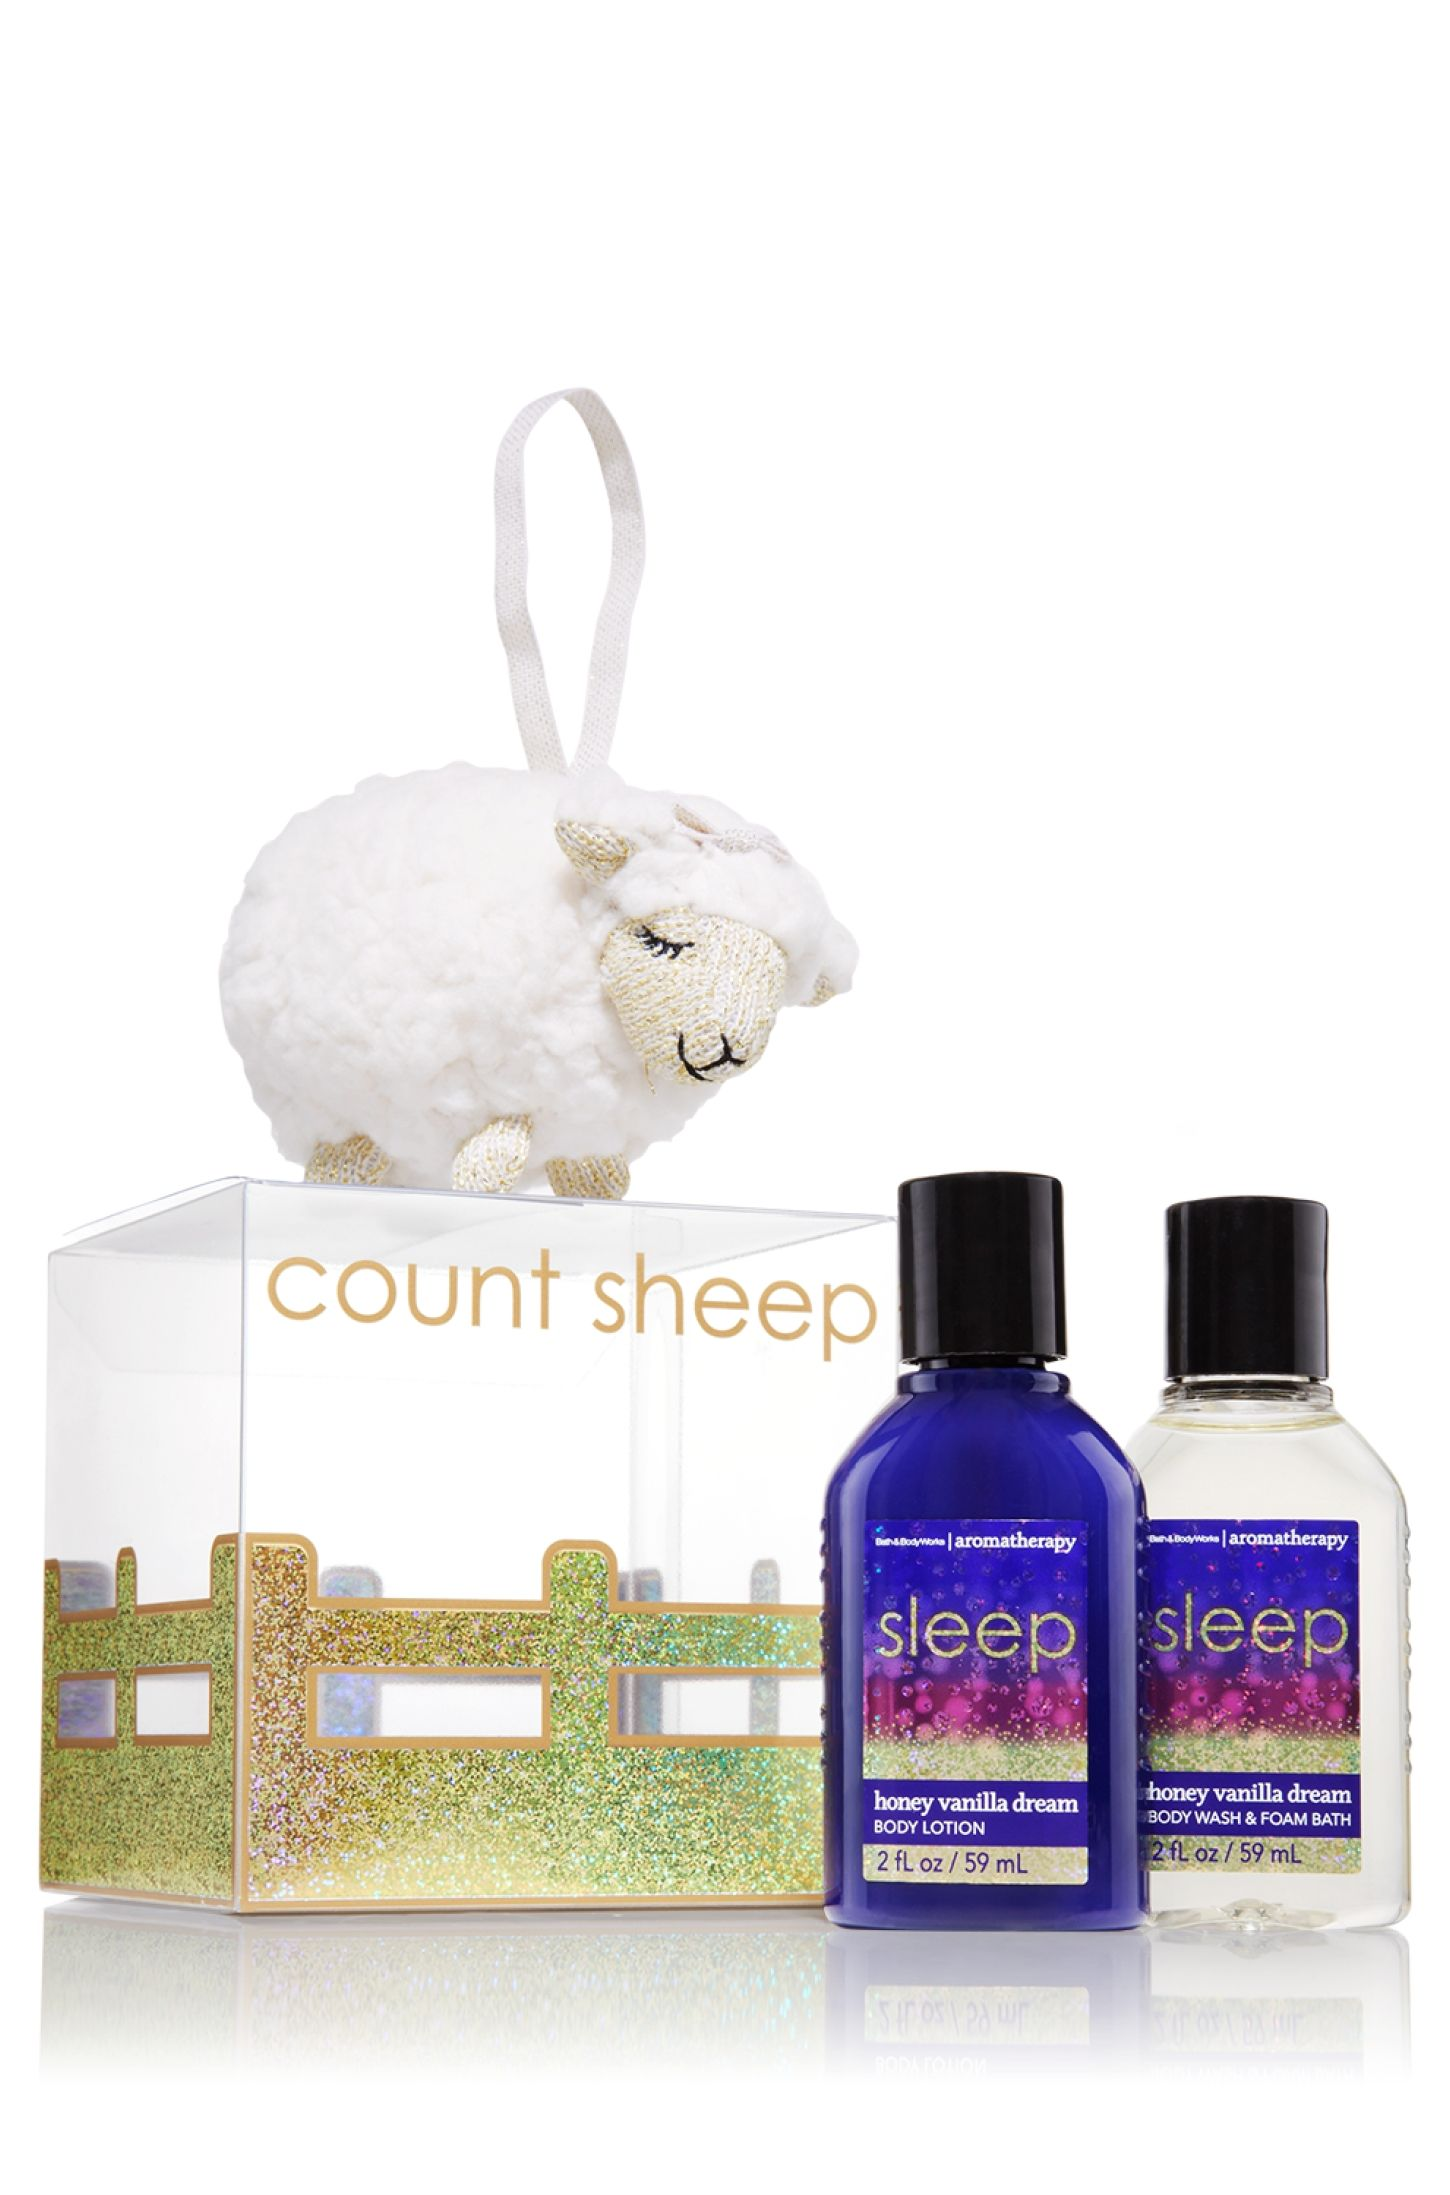 Sleep - Honey Vanilla Dream Mini Lambie Gift Set - Aromatherapy - Bath & Body Works; perfect for the holidays!! plus that little sheep is too damn cute.